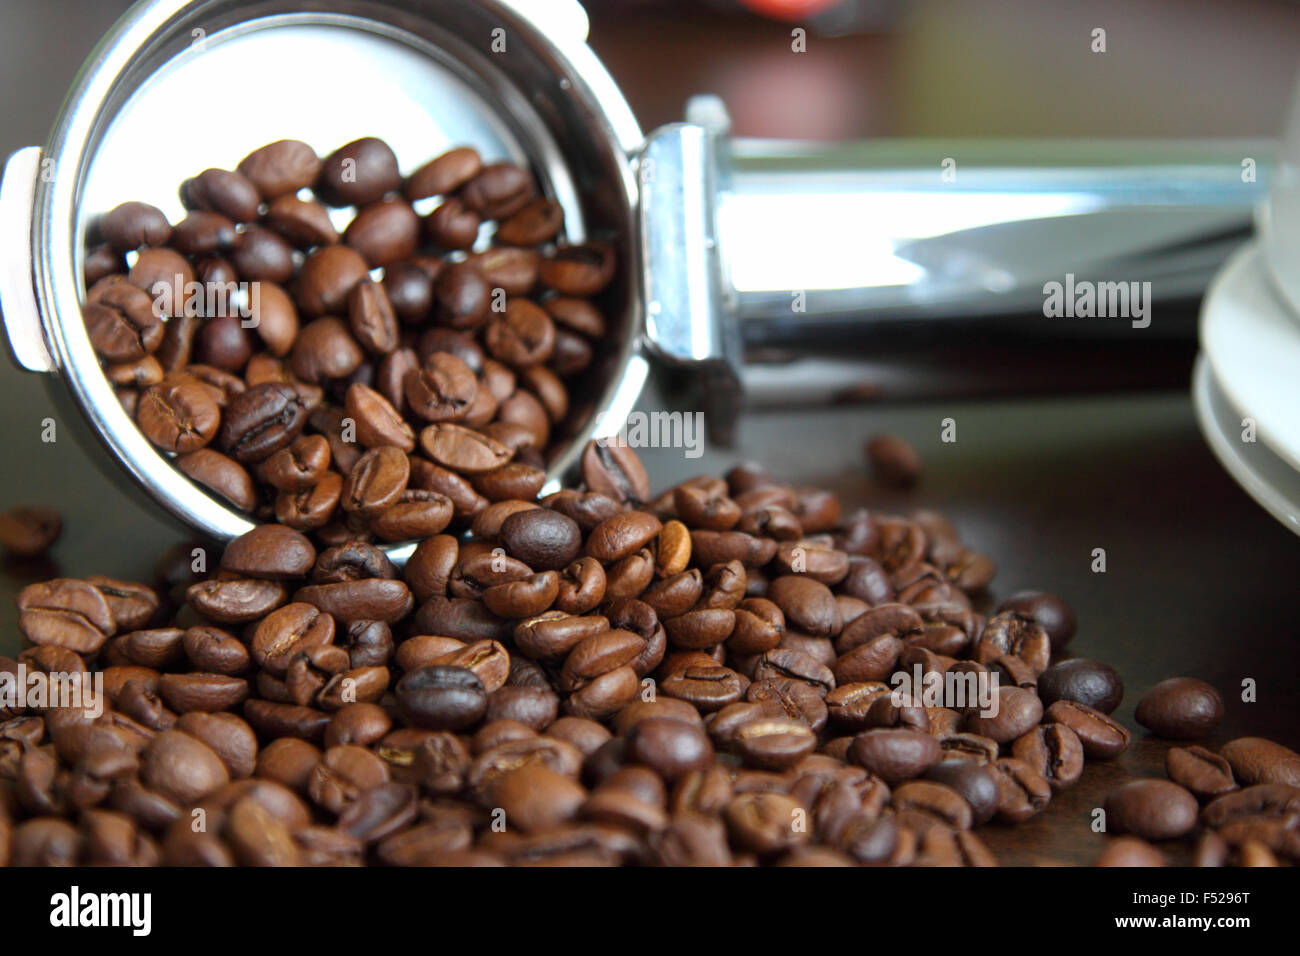 Coffee measuring spoon.Coffee beans spill out of the dimensional, metal spoons and lie loose on the table. - Stock Image